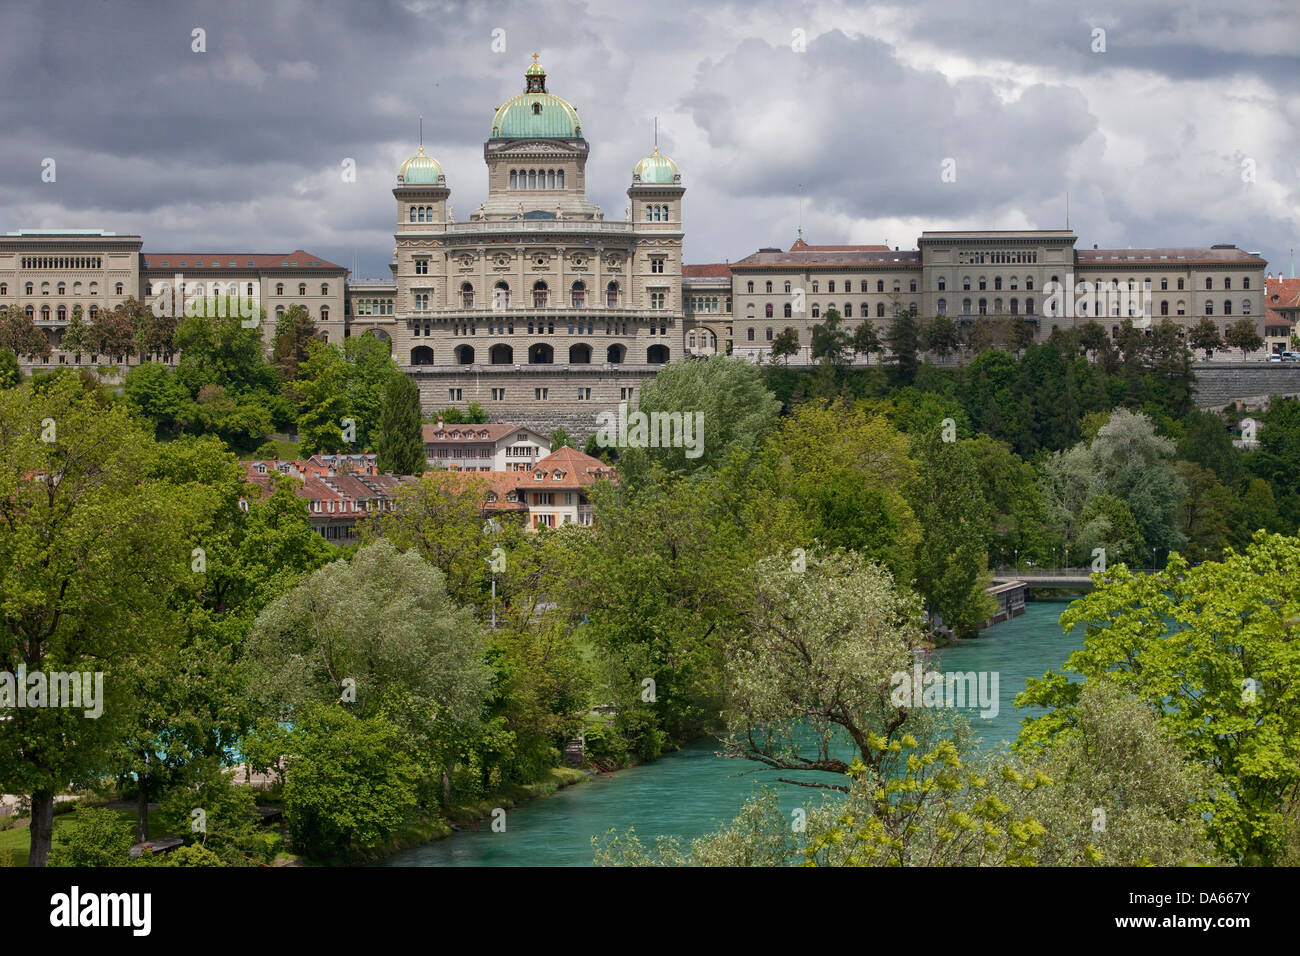 Federal Parliament, Aare, Bern, building, construction, weather, clouds, cloud, canton, Bern, Switzerland, Europe, - Stock Image